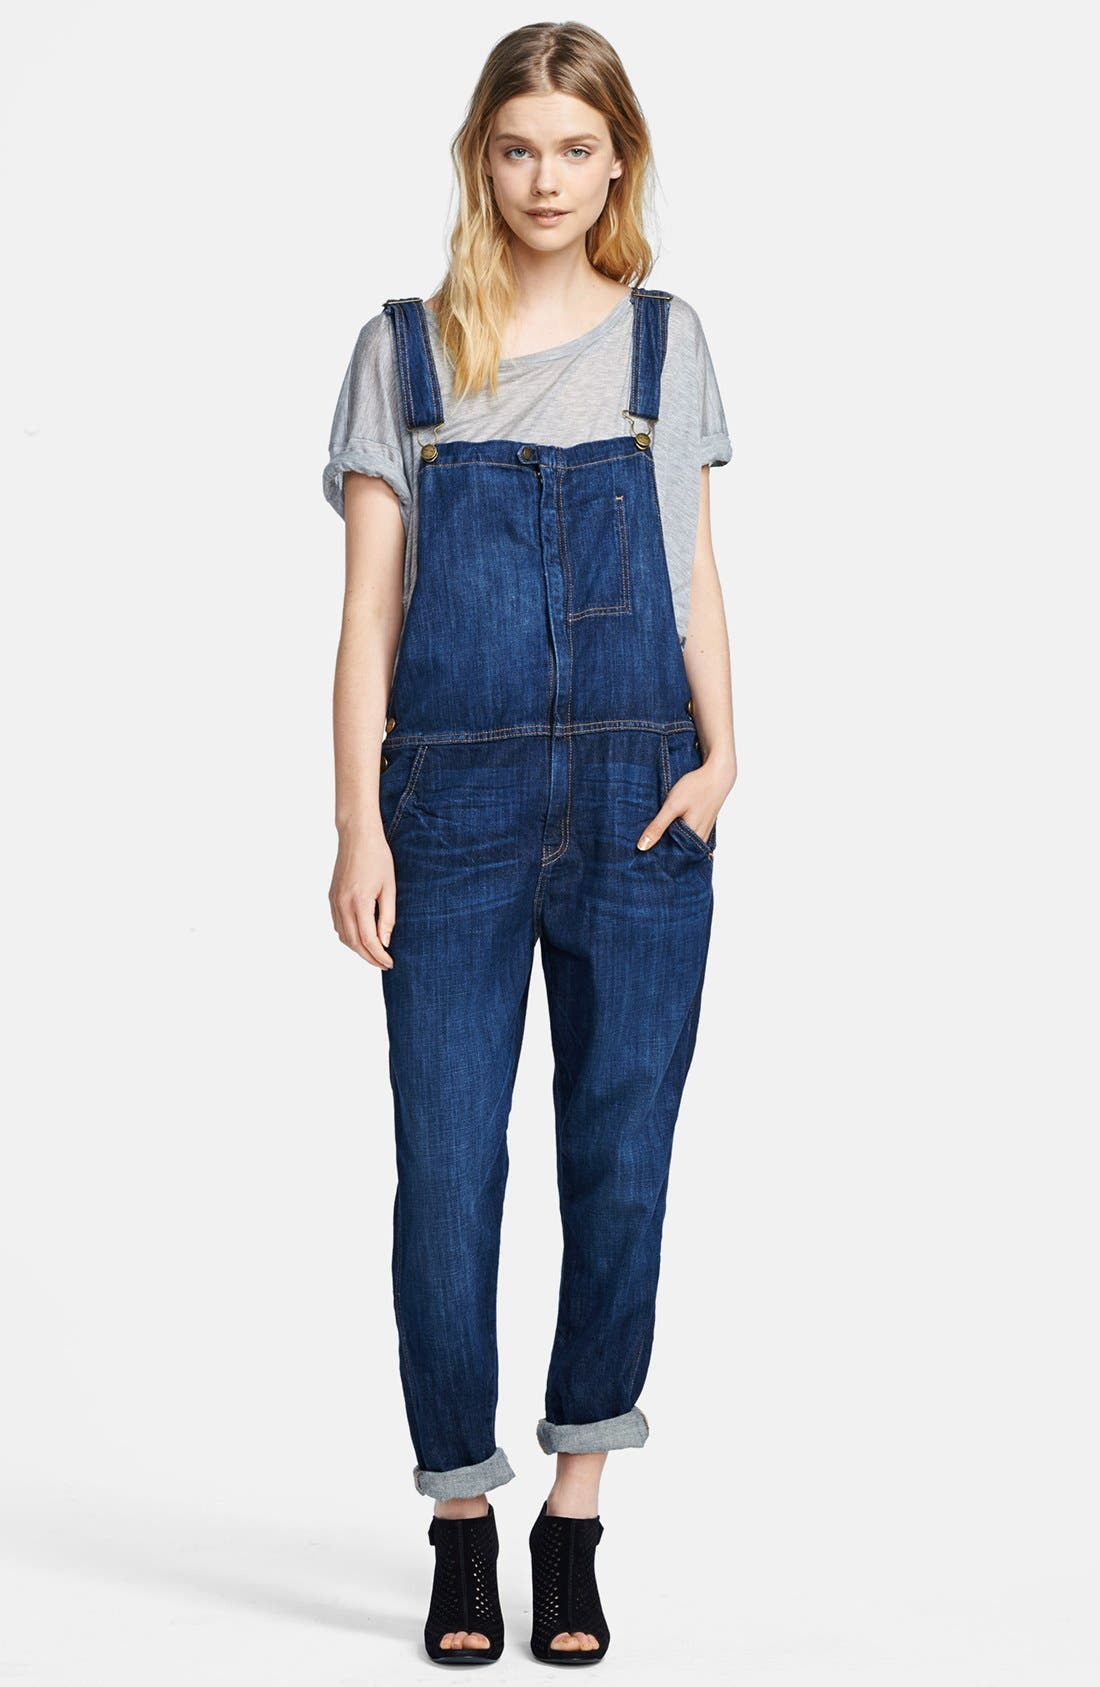 CURRENT/ELLIOTT 'The Ranch Hand' Overalls, Main, color, 464